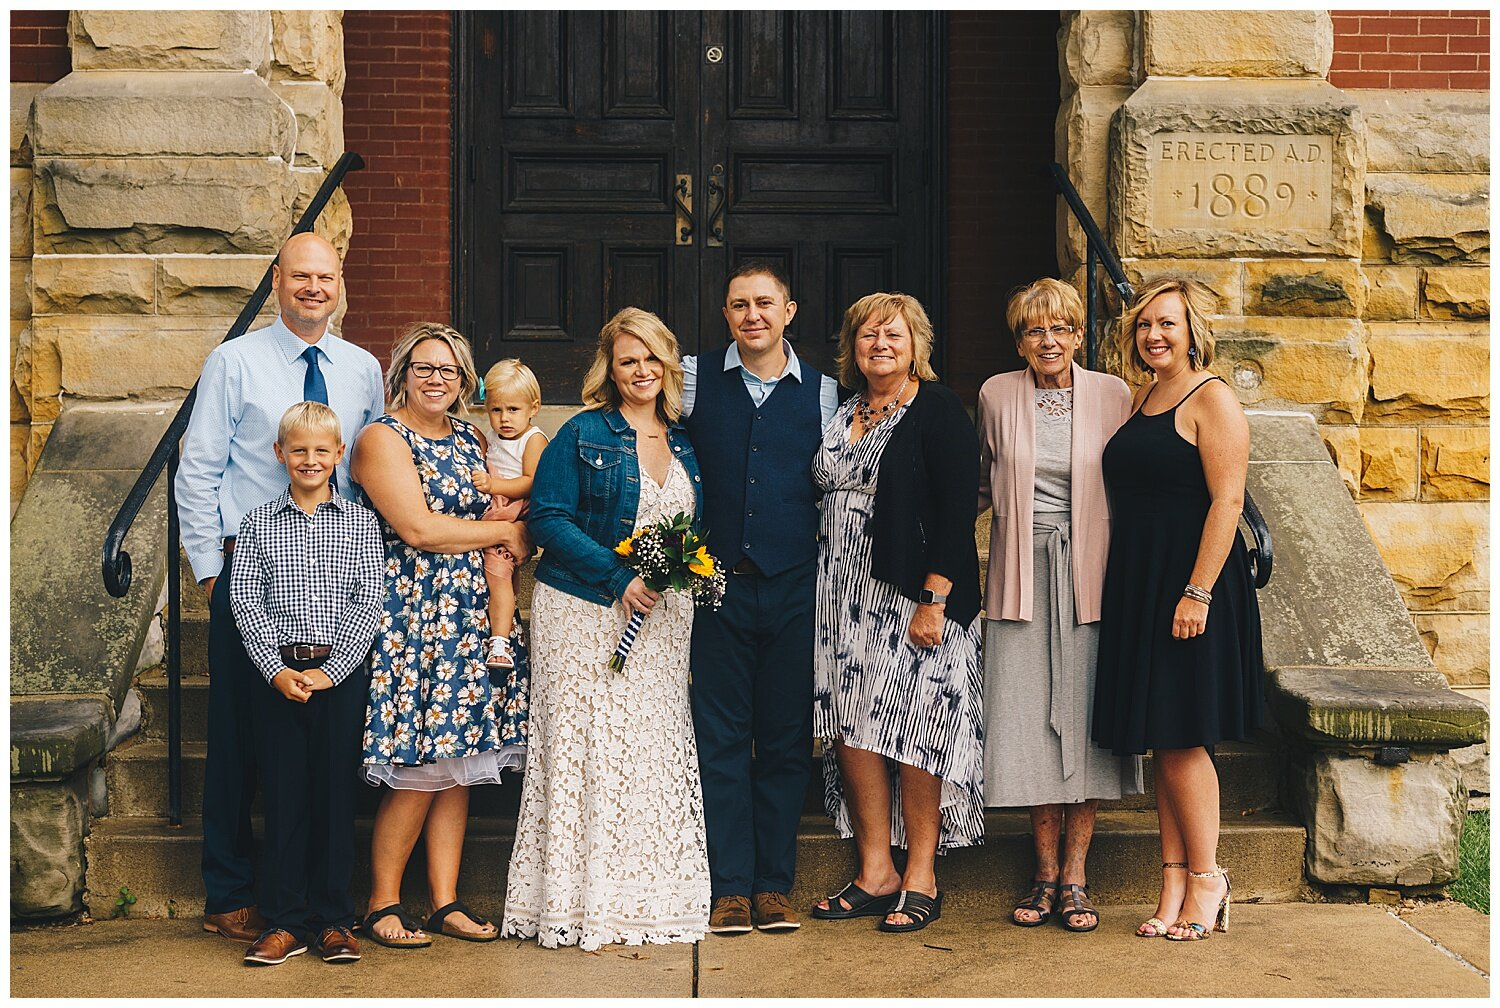 Heck Designs and Photography_Franklin, TN Wedding Photographer_Cassie and Dan_Family Formals